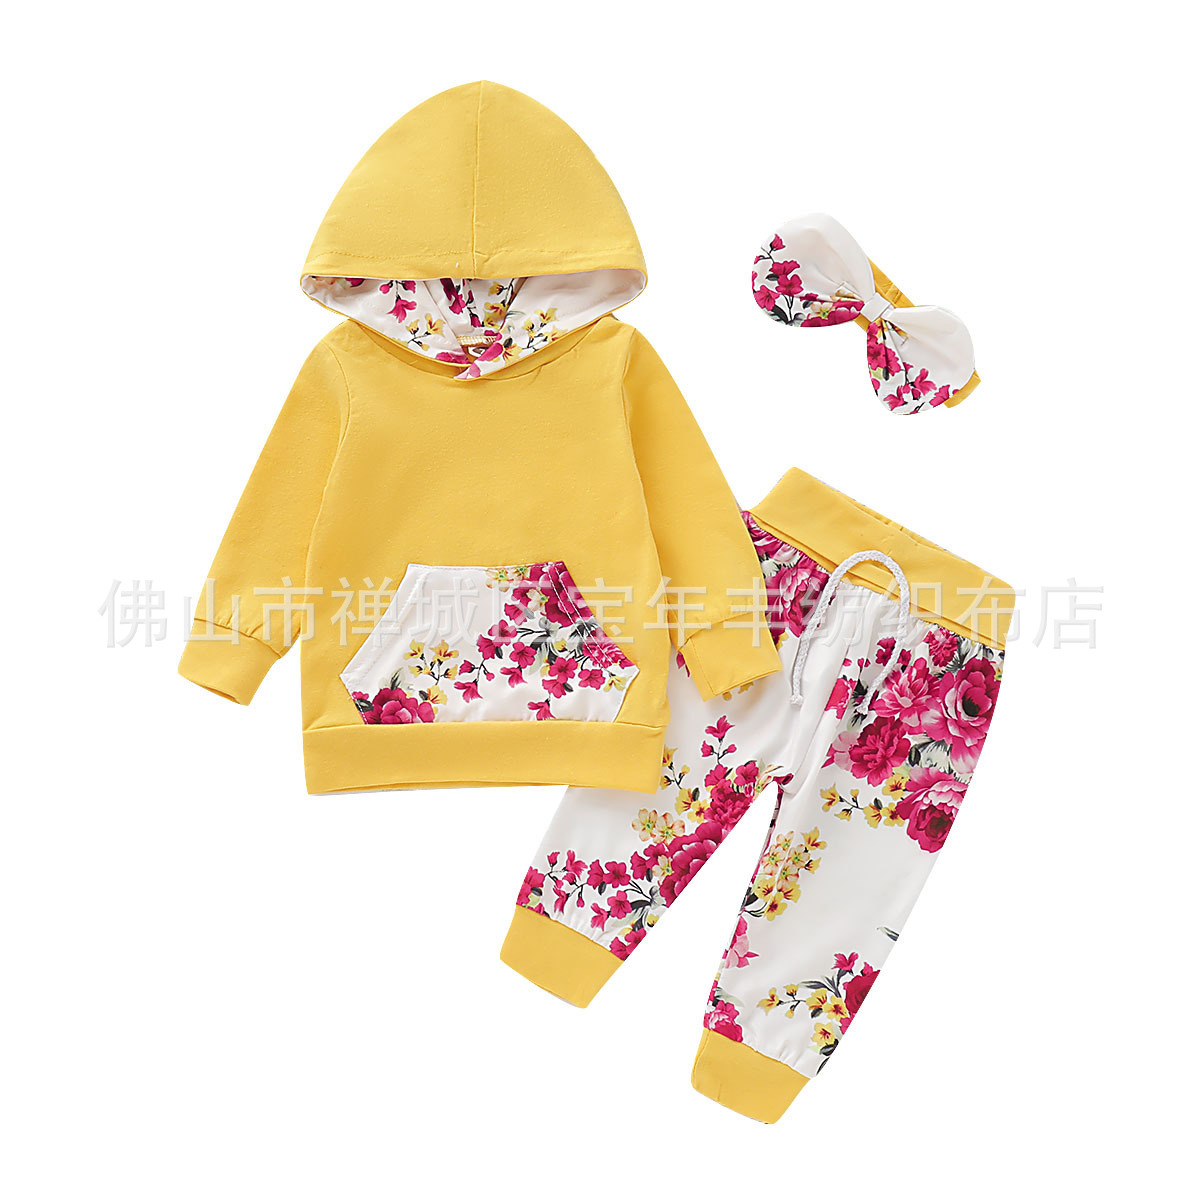 Children's Clothing  Striped Long-Sleeved Casual Printing Hooded  set D09.21 1